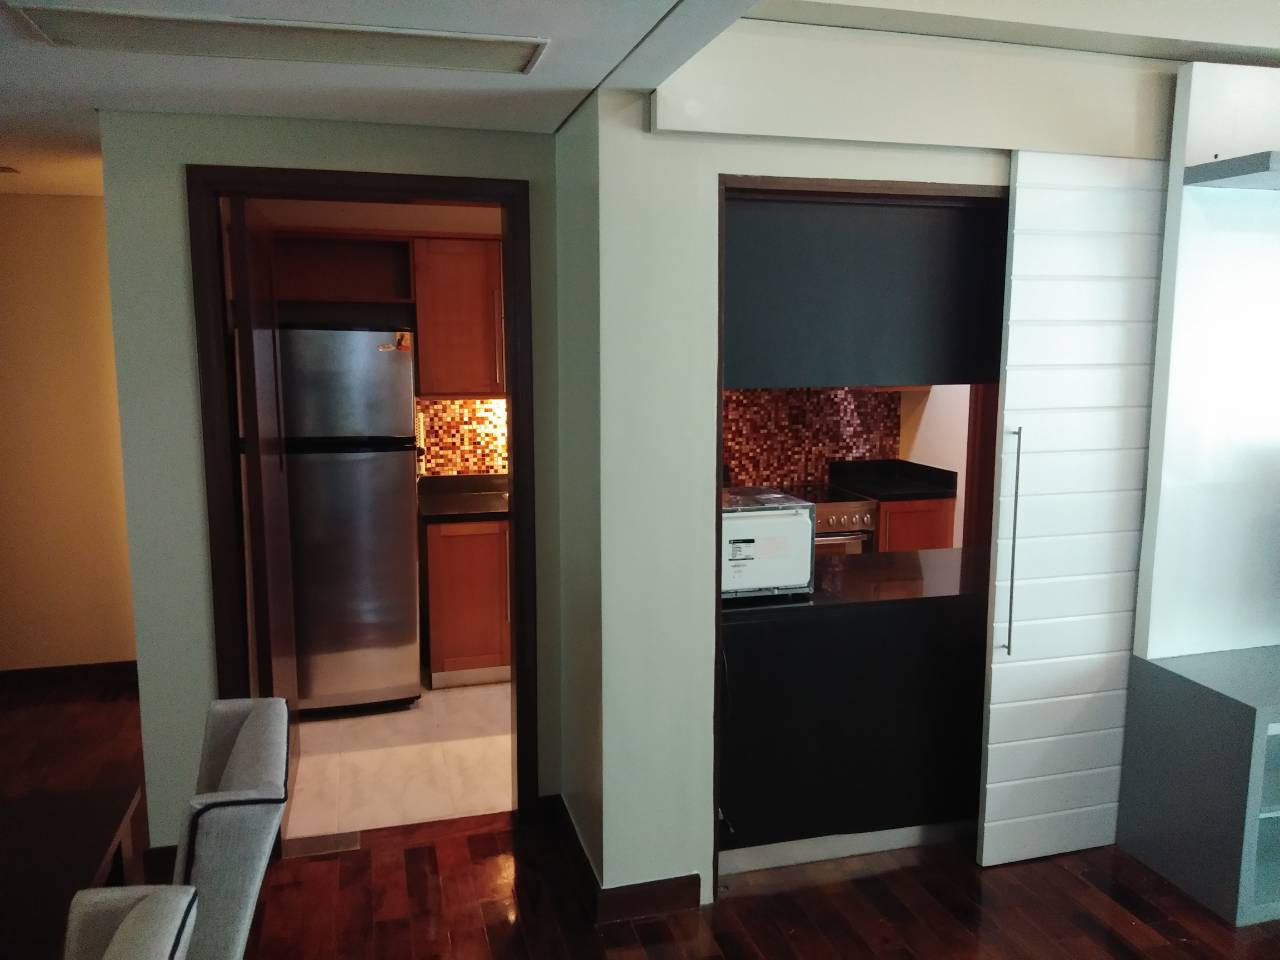 2 Bedrooms Condo For Rent, The Residences At Greenbelt Kitchen Entrance